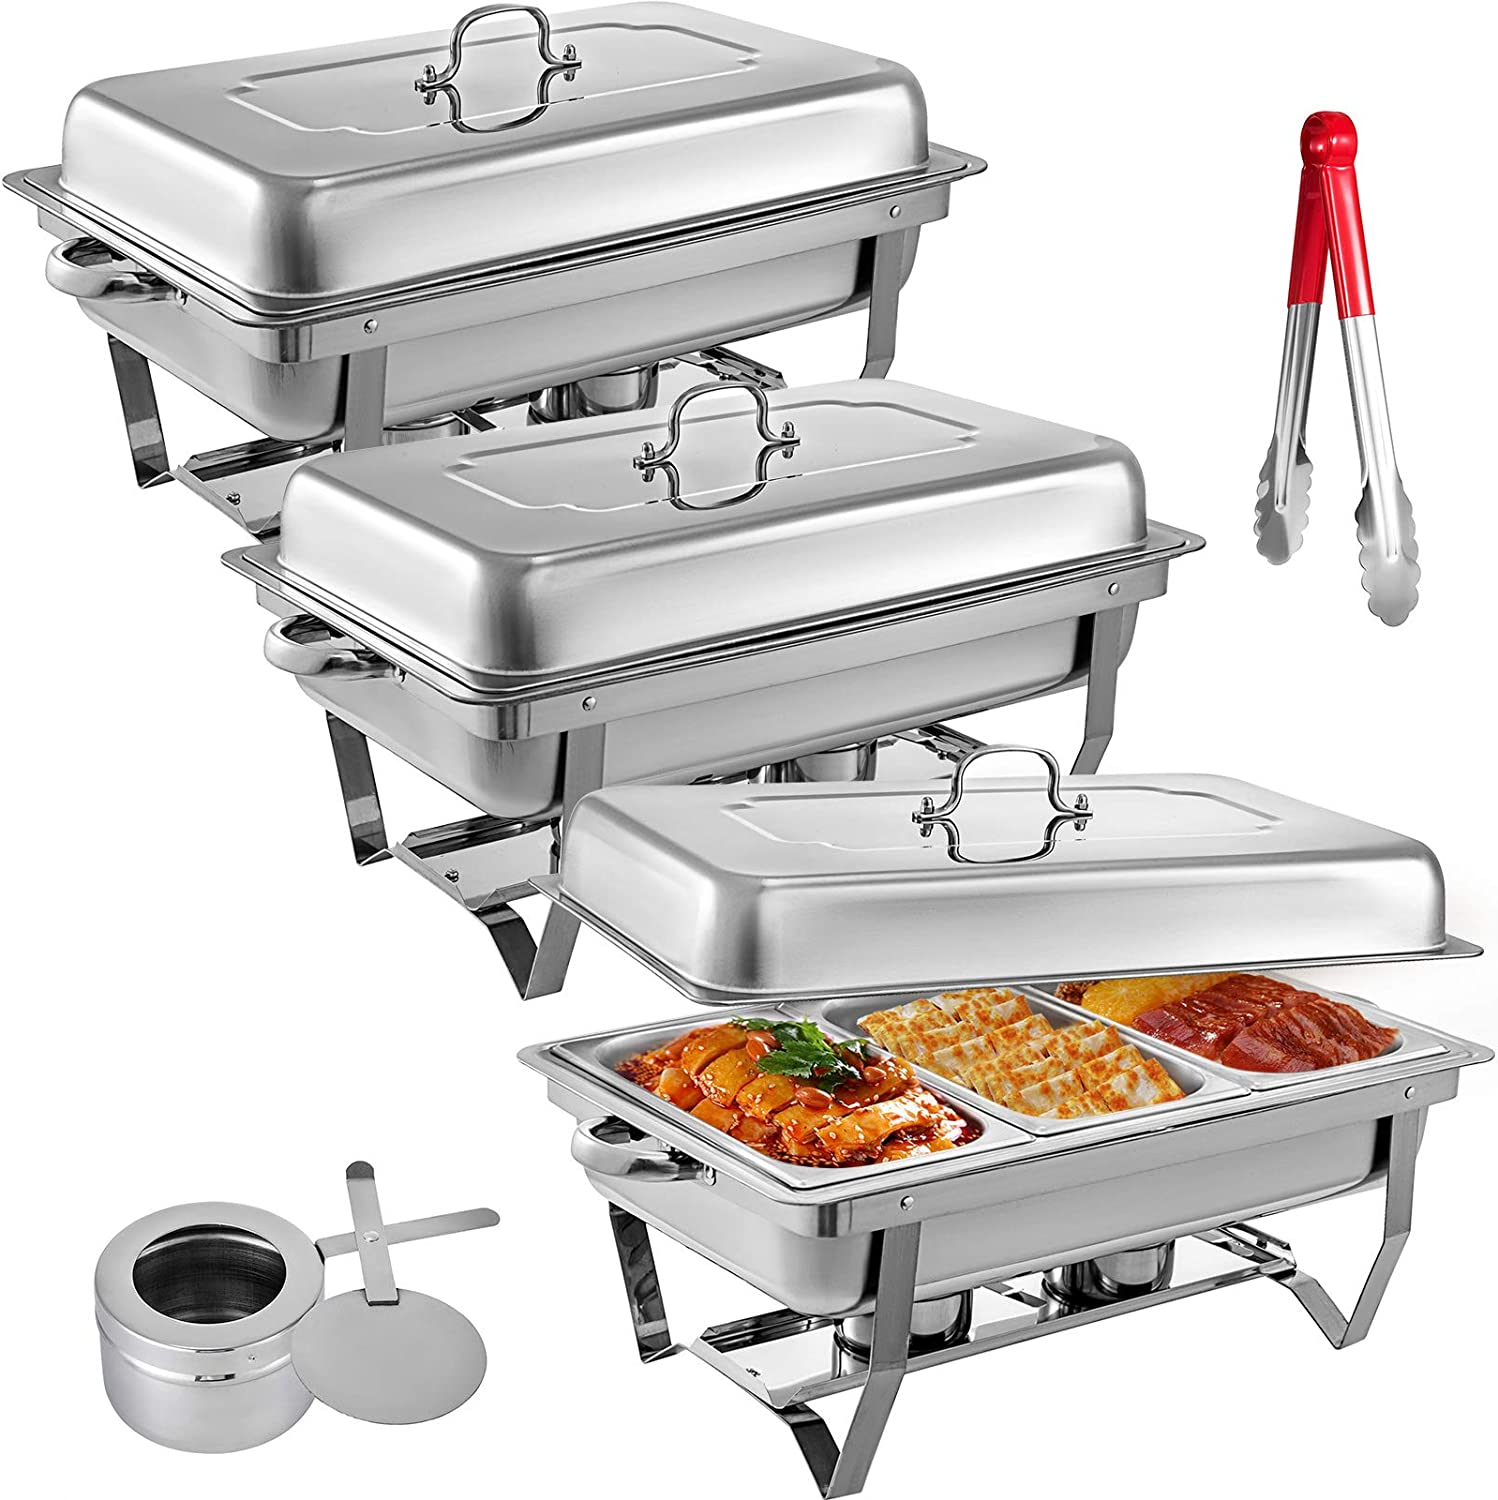 Mophorn 3 Packs Stainless Steel Chafing Dishes 3 1/3rd Size Pans 8 Quart Rectangular Chafer Complete Set Chafing Dishes Food Pans (3 Packs)